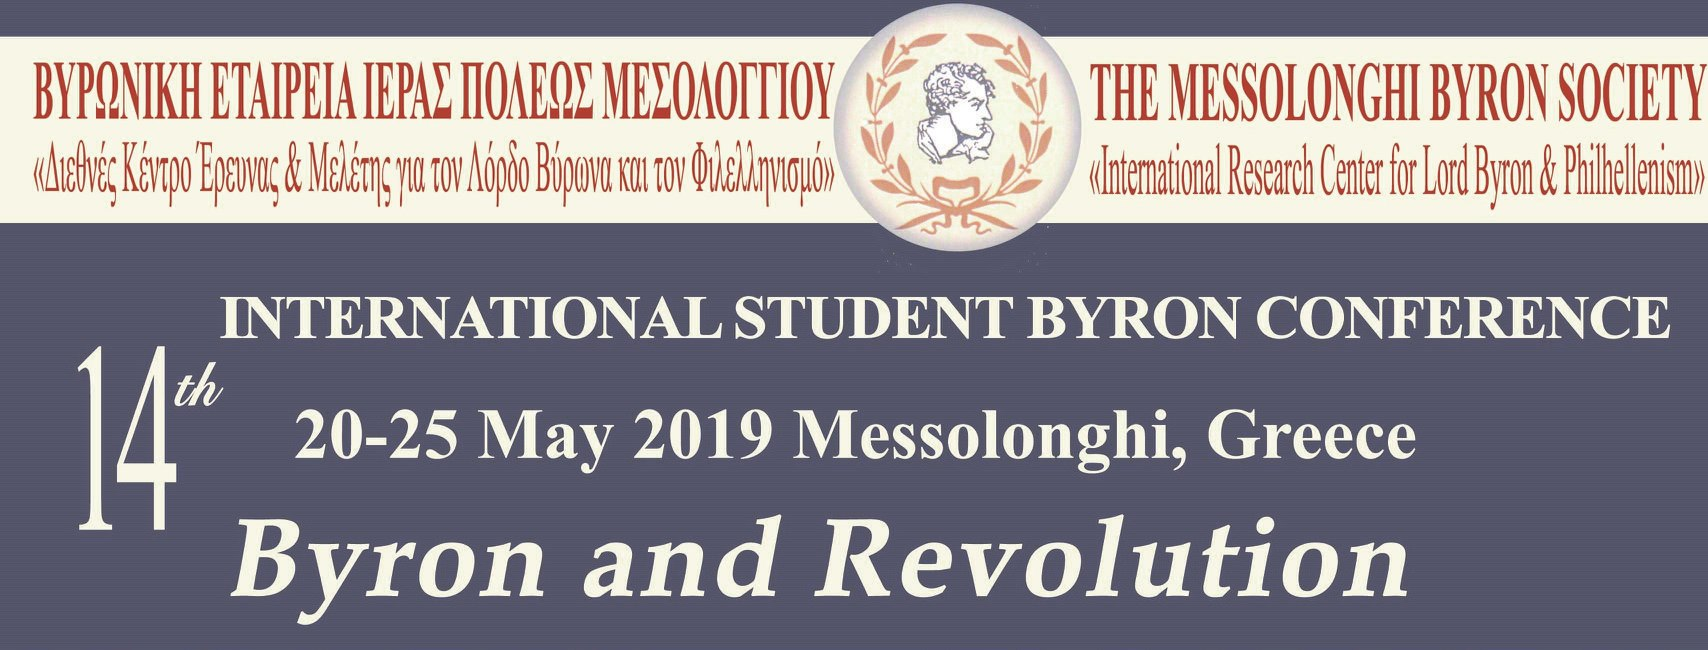 14th International Student Byron Conference 20-25 May 2019. Sessions of Student papers and Lectures